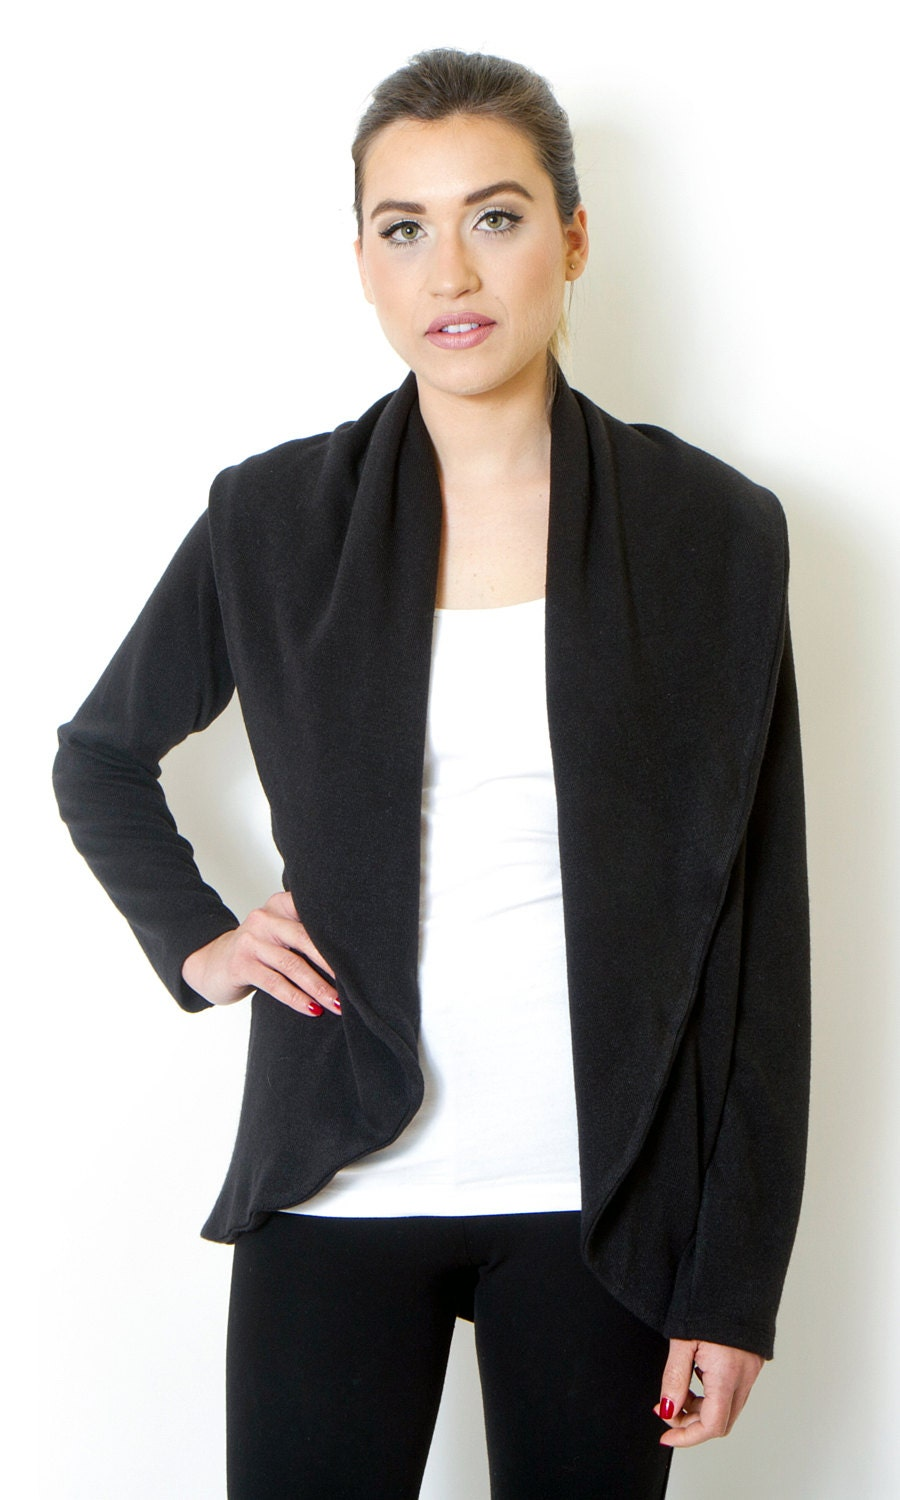 Shop our Collection of Women's Black Cardigan Sweaters at neidagrosk0dwju.ga for the Latest Designer Brands & Styles. FREE SHIPPING AVAILABLE!